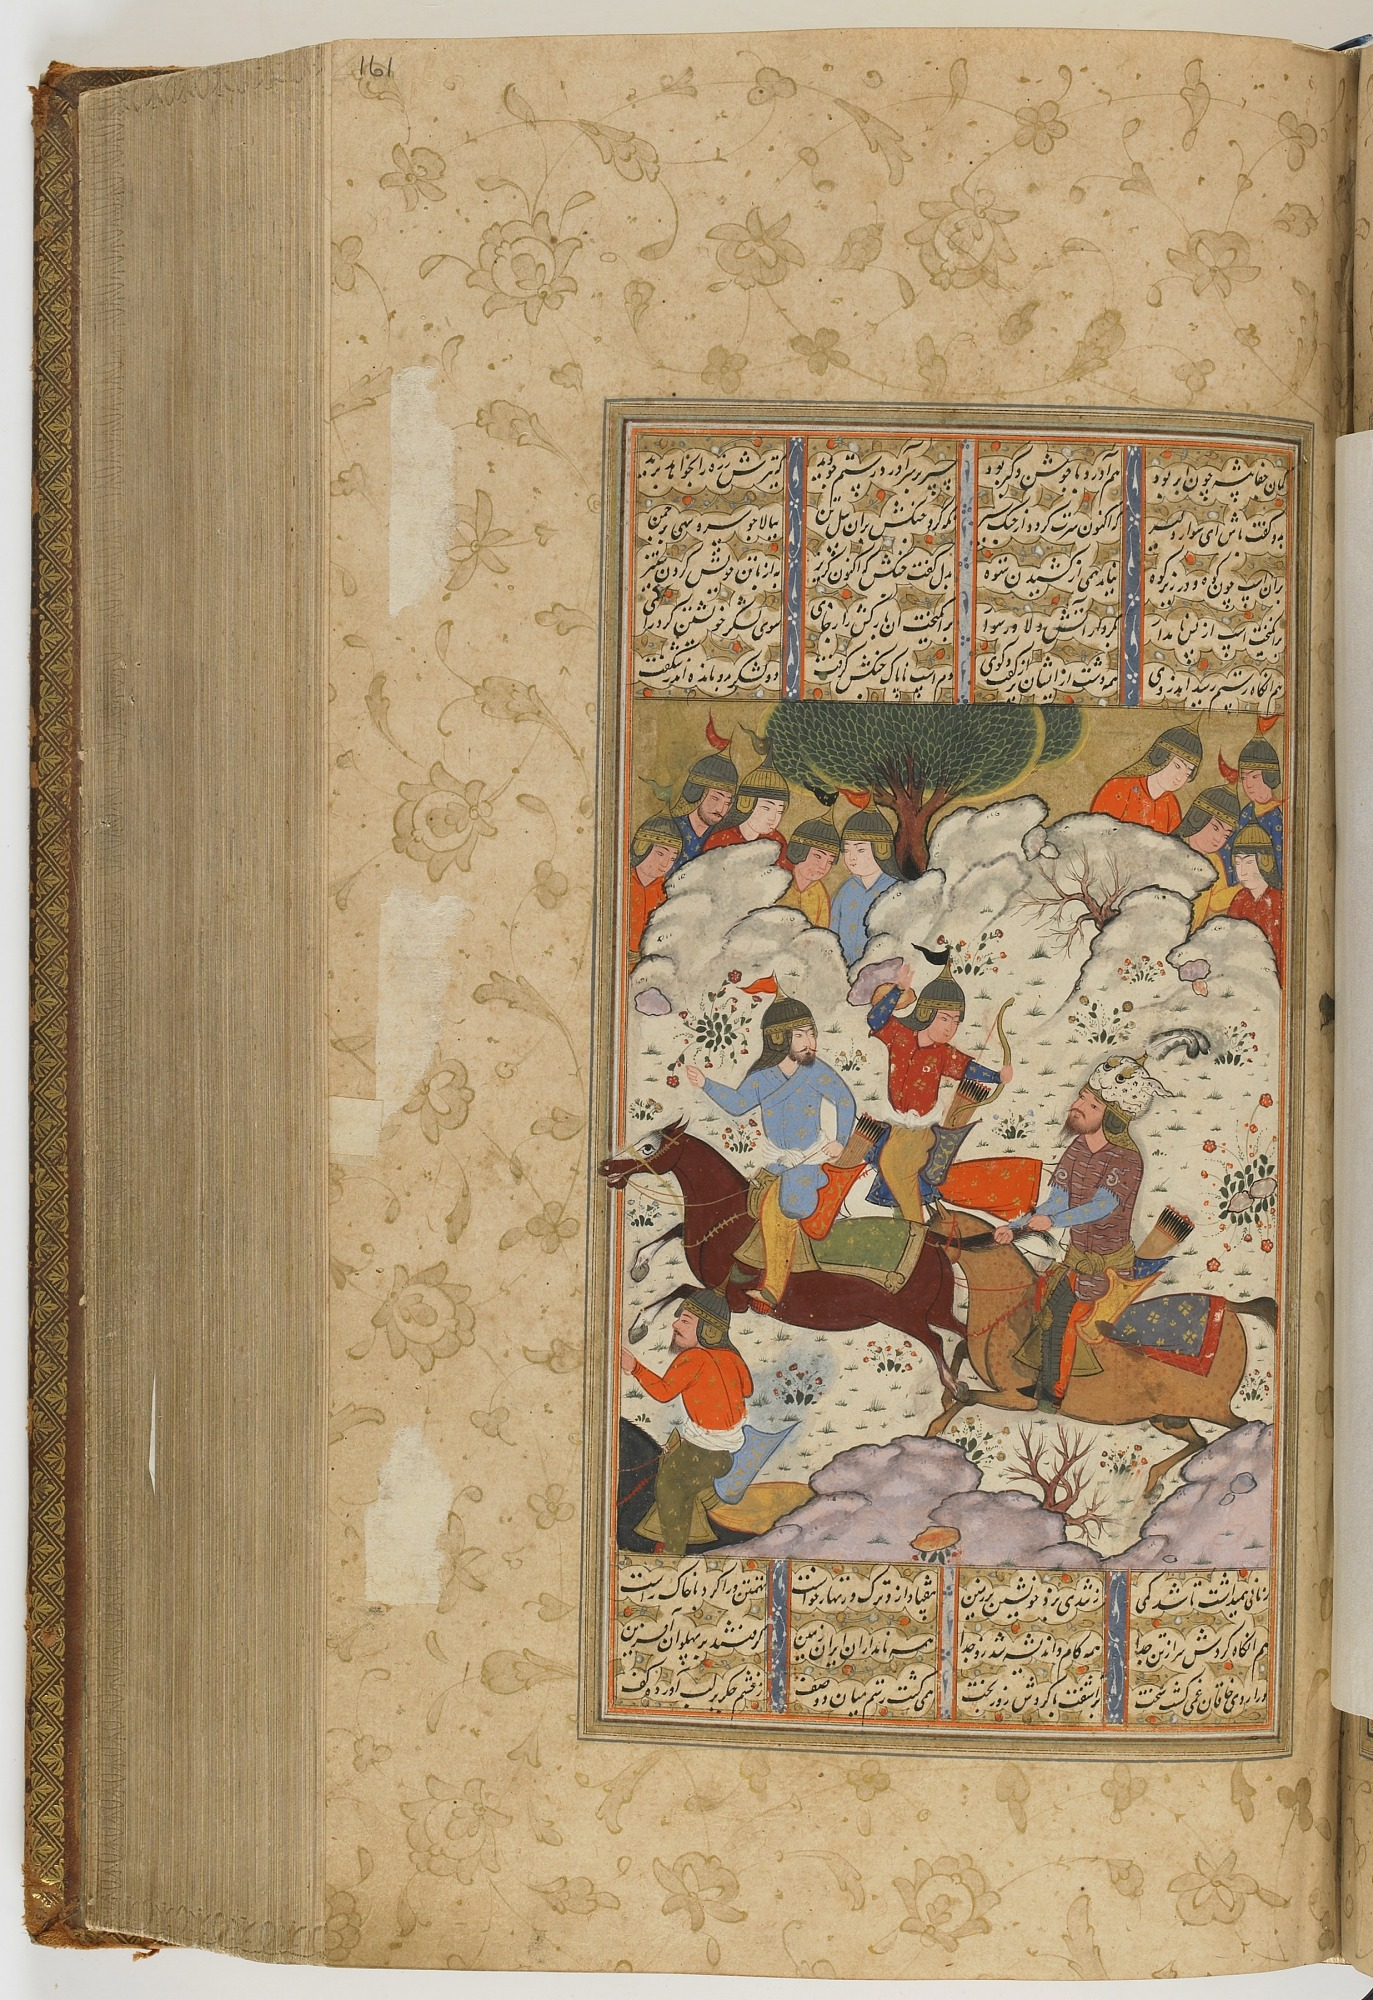 folio 161 recto: The Shahnama (Book of kings) by Firdausi (d. 1020)